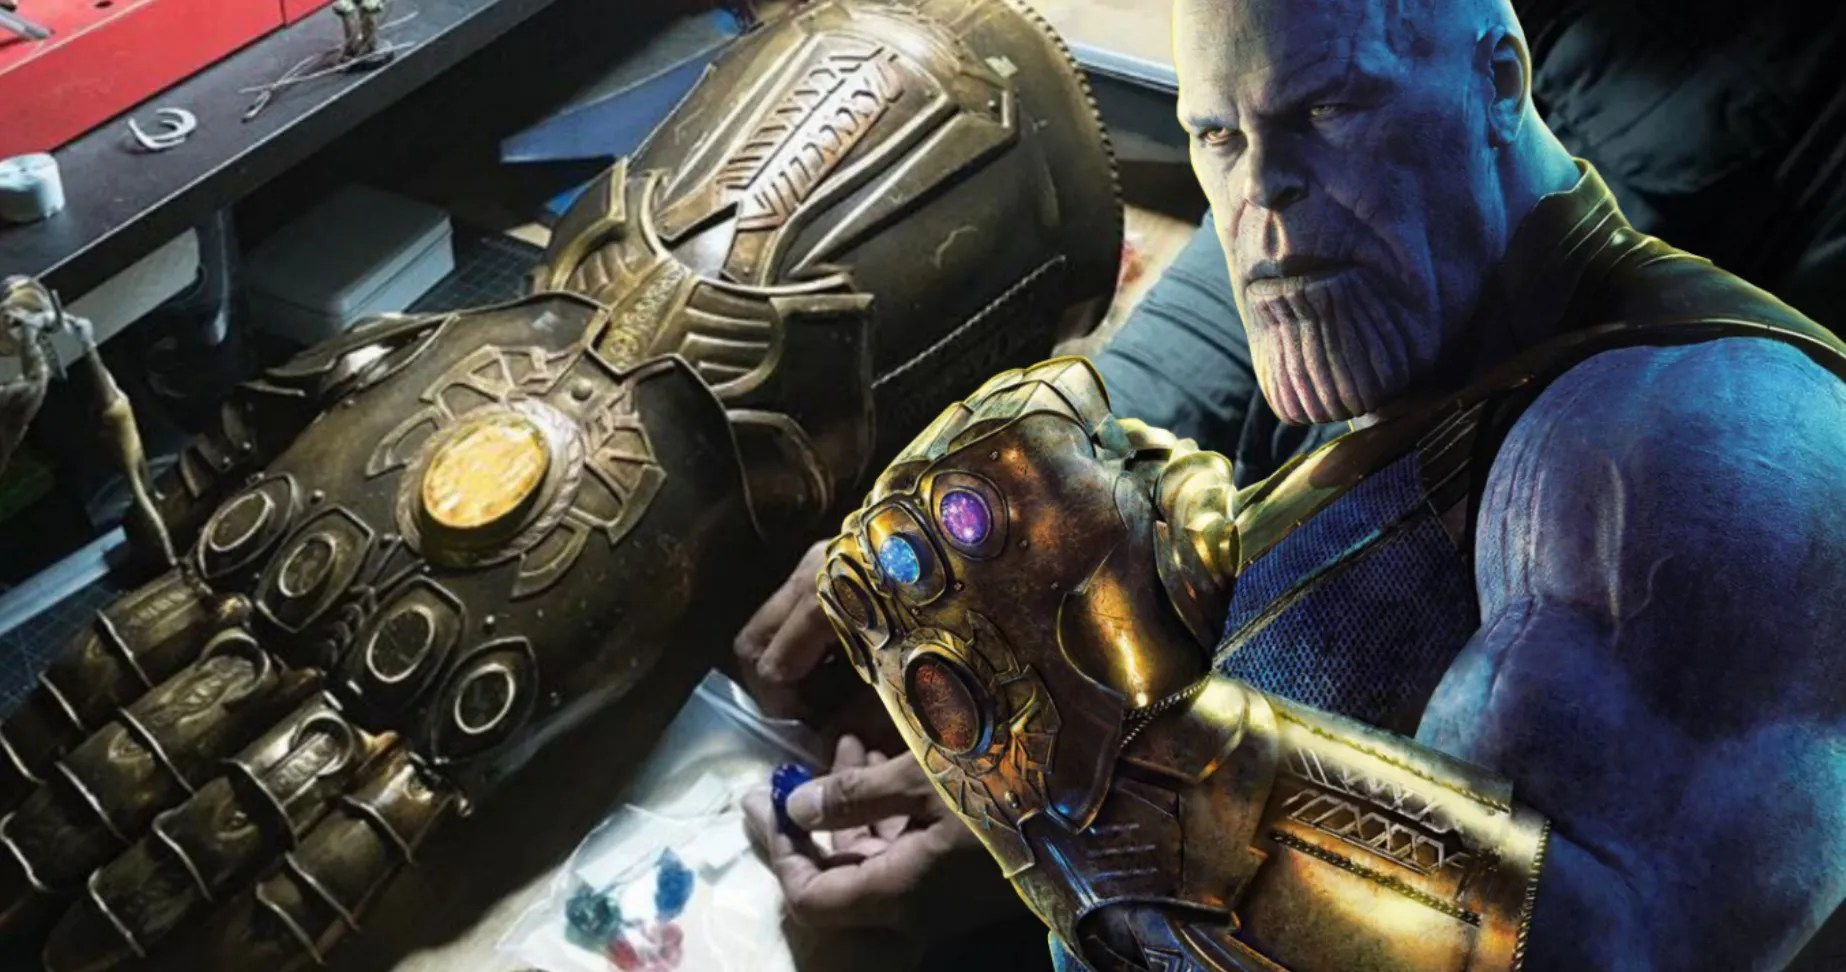 Replica of thanos's infinity gauntlet from the avengers infinity war movie. Thanos Infinity Gauntlet Comes Together In Avengers Infinity War Props Photo